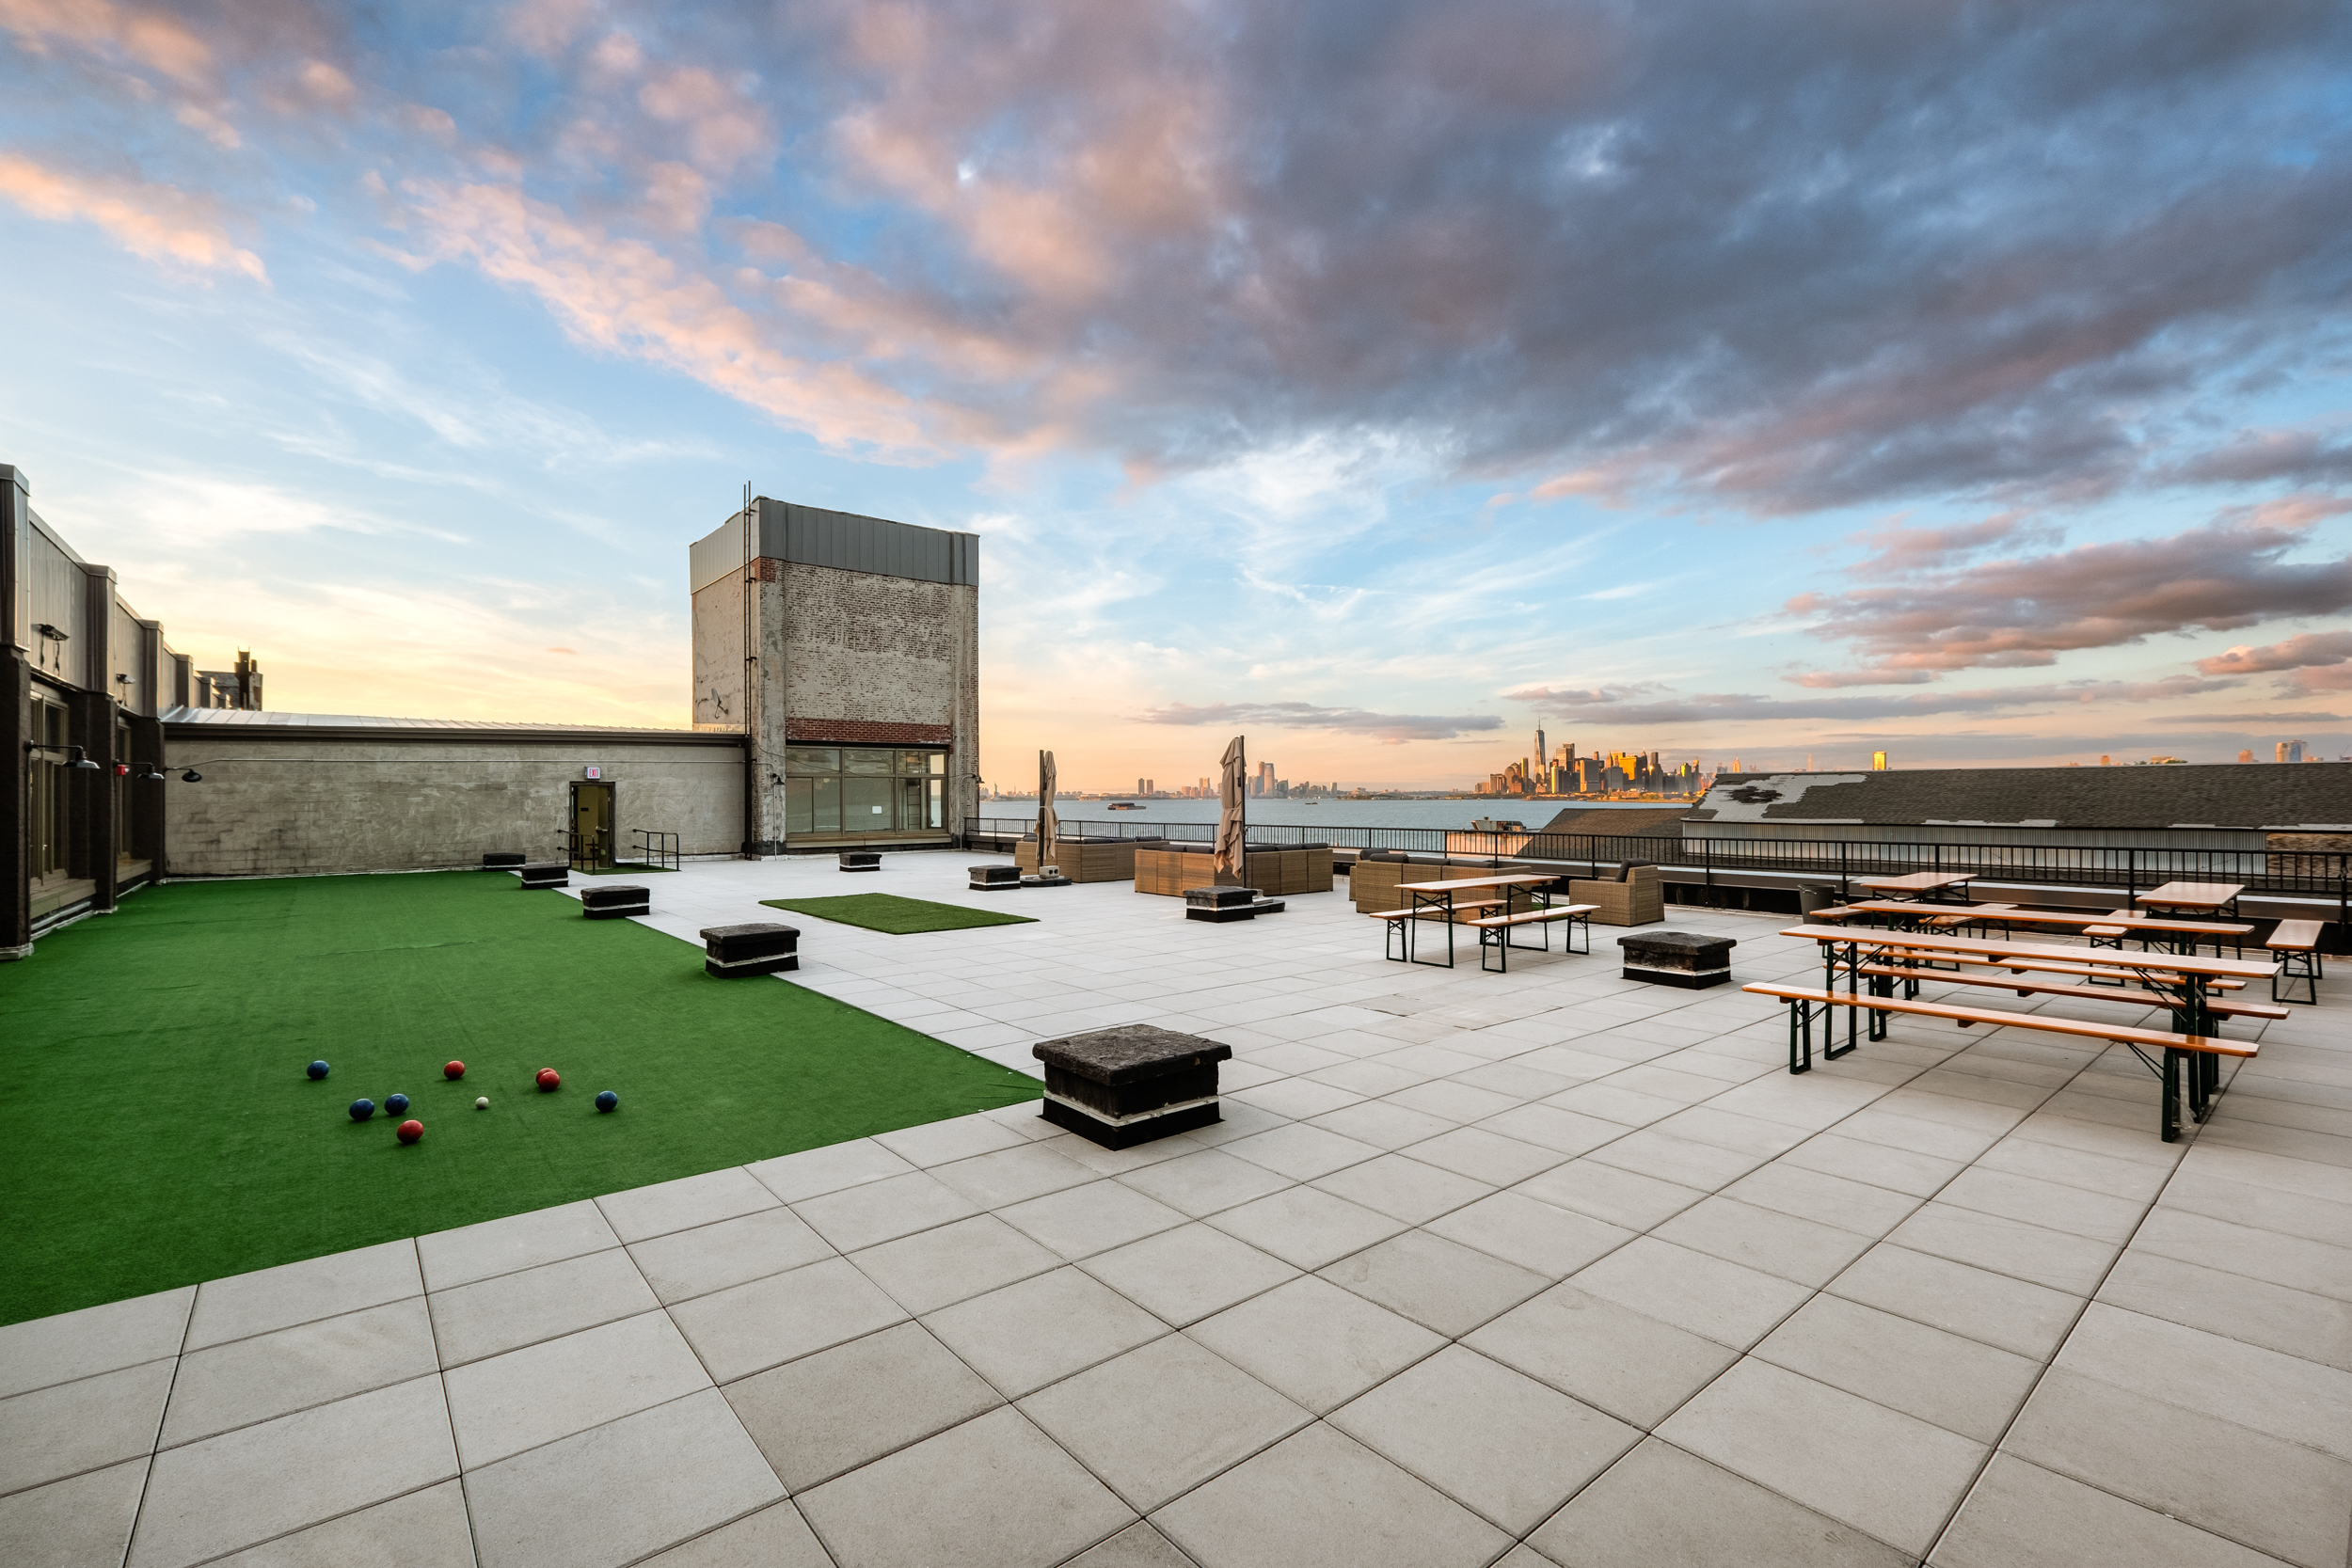 Sunset Park Rooftop event space at Sunset Park Rooftop in New York City, NYC, NY/NJ Area